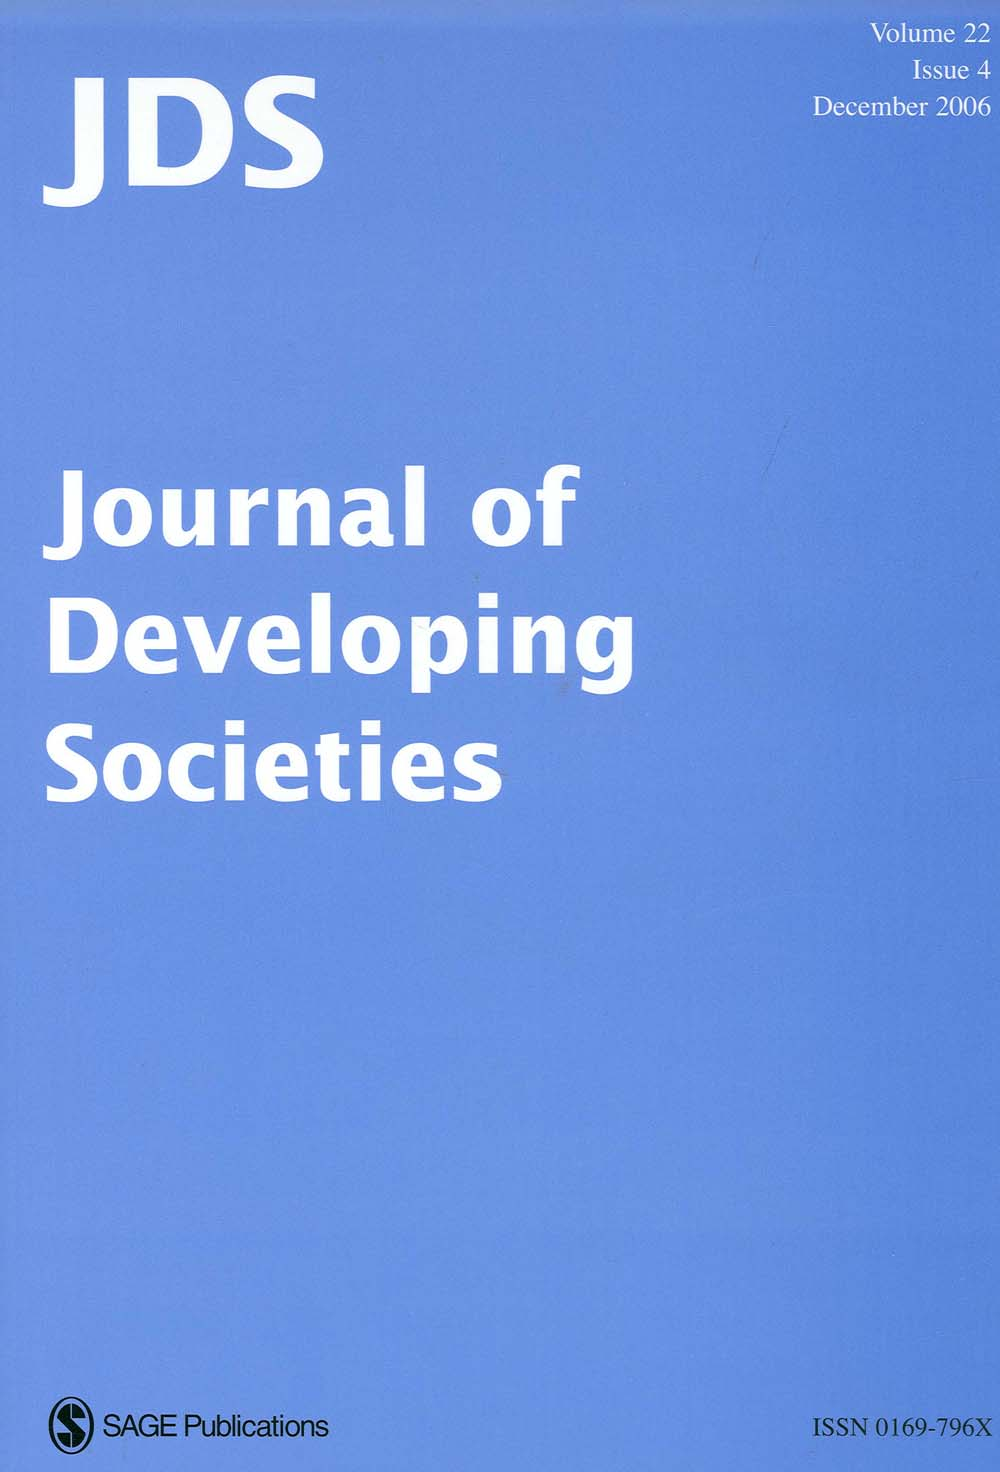 Journal of Developing Societies